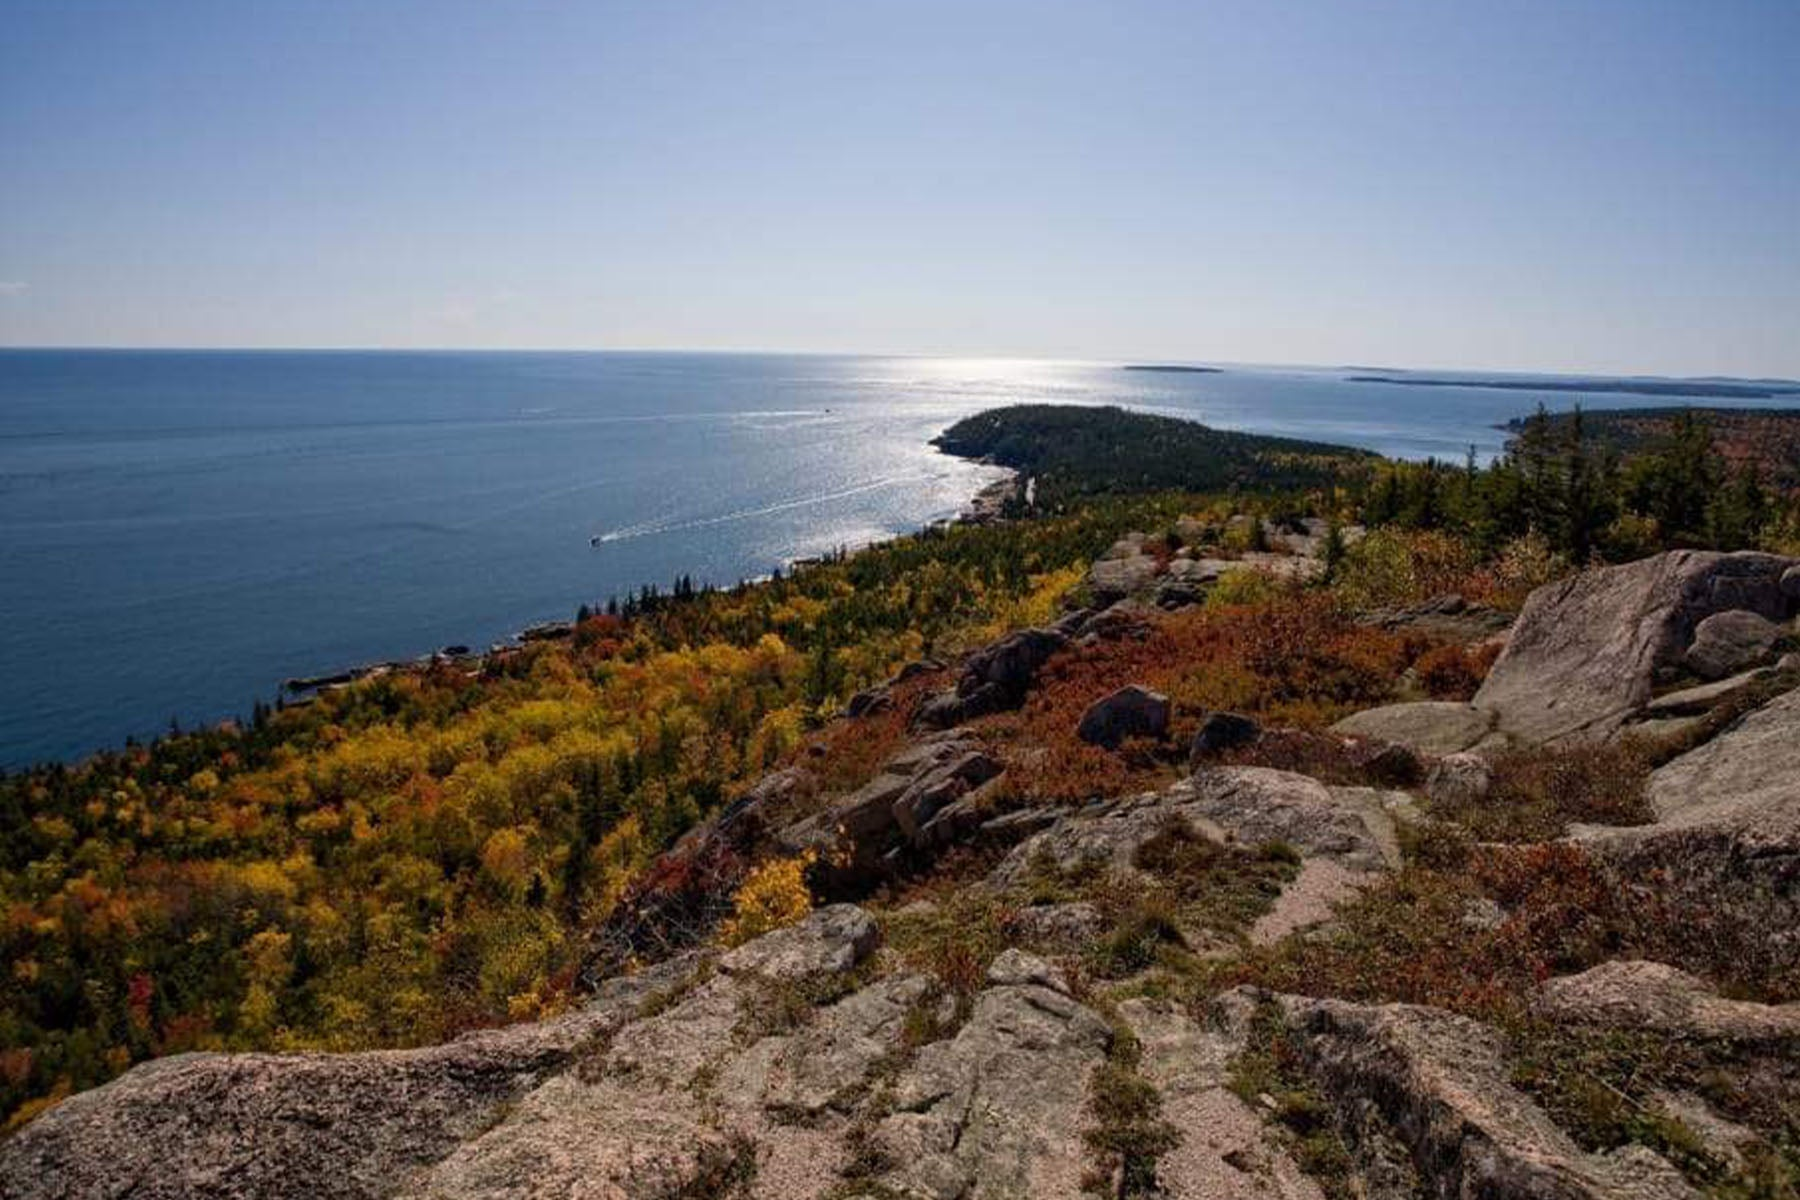 National Parks Guide: Walk, Bike, or Go Horseback Riding Through Acadia National Park